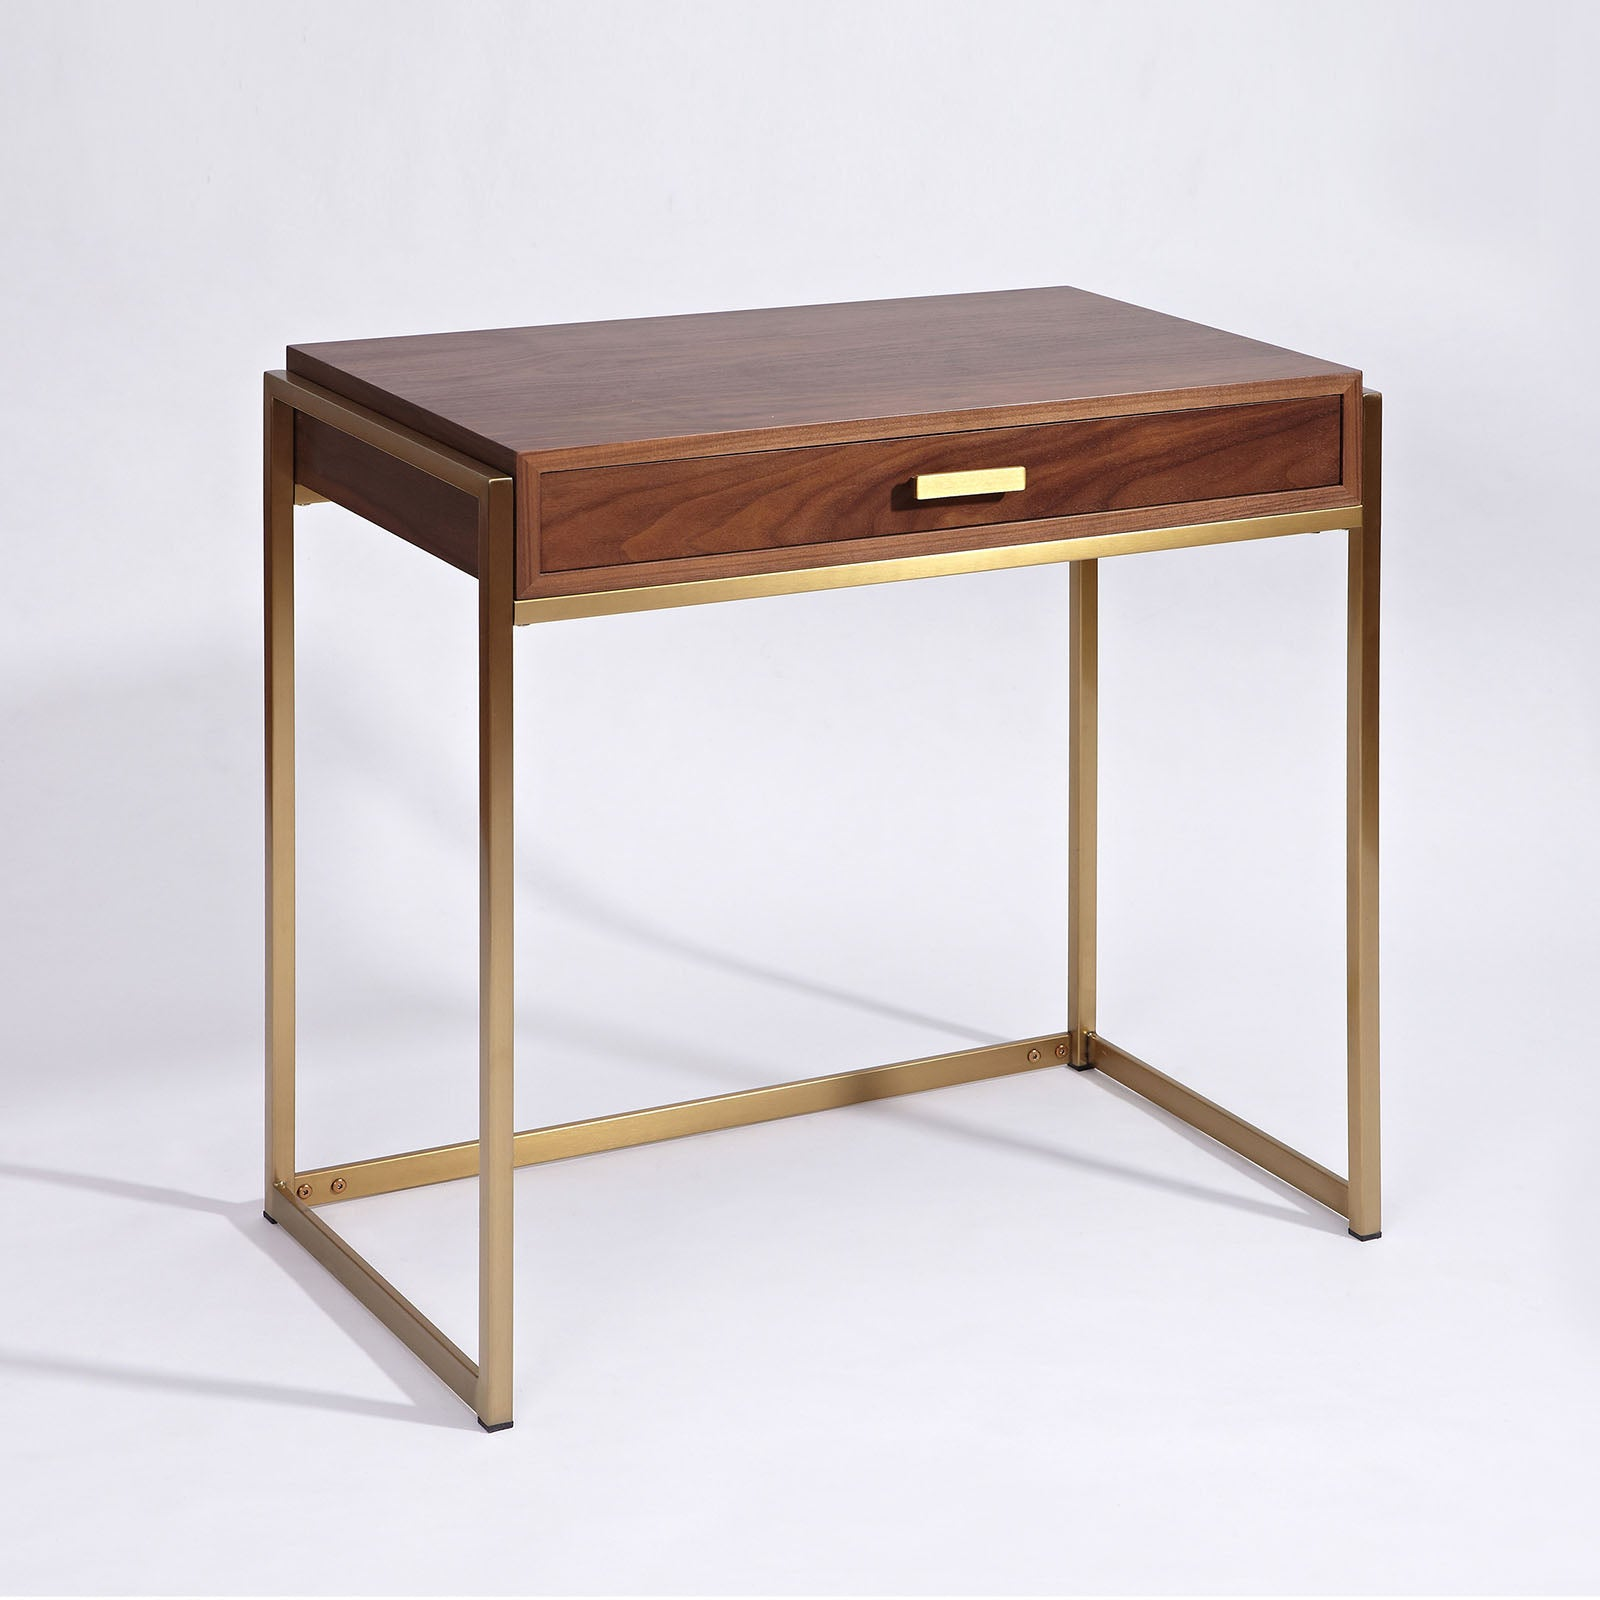 Pre-Order 15 days delivery  Master Console\Desk  80 cm BSZ17421A